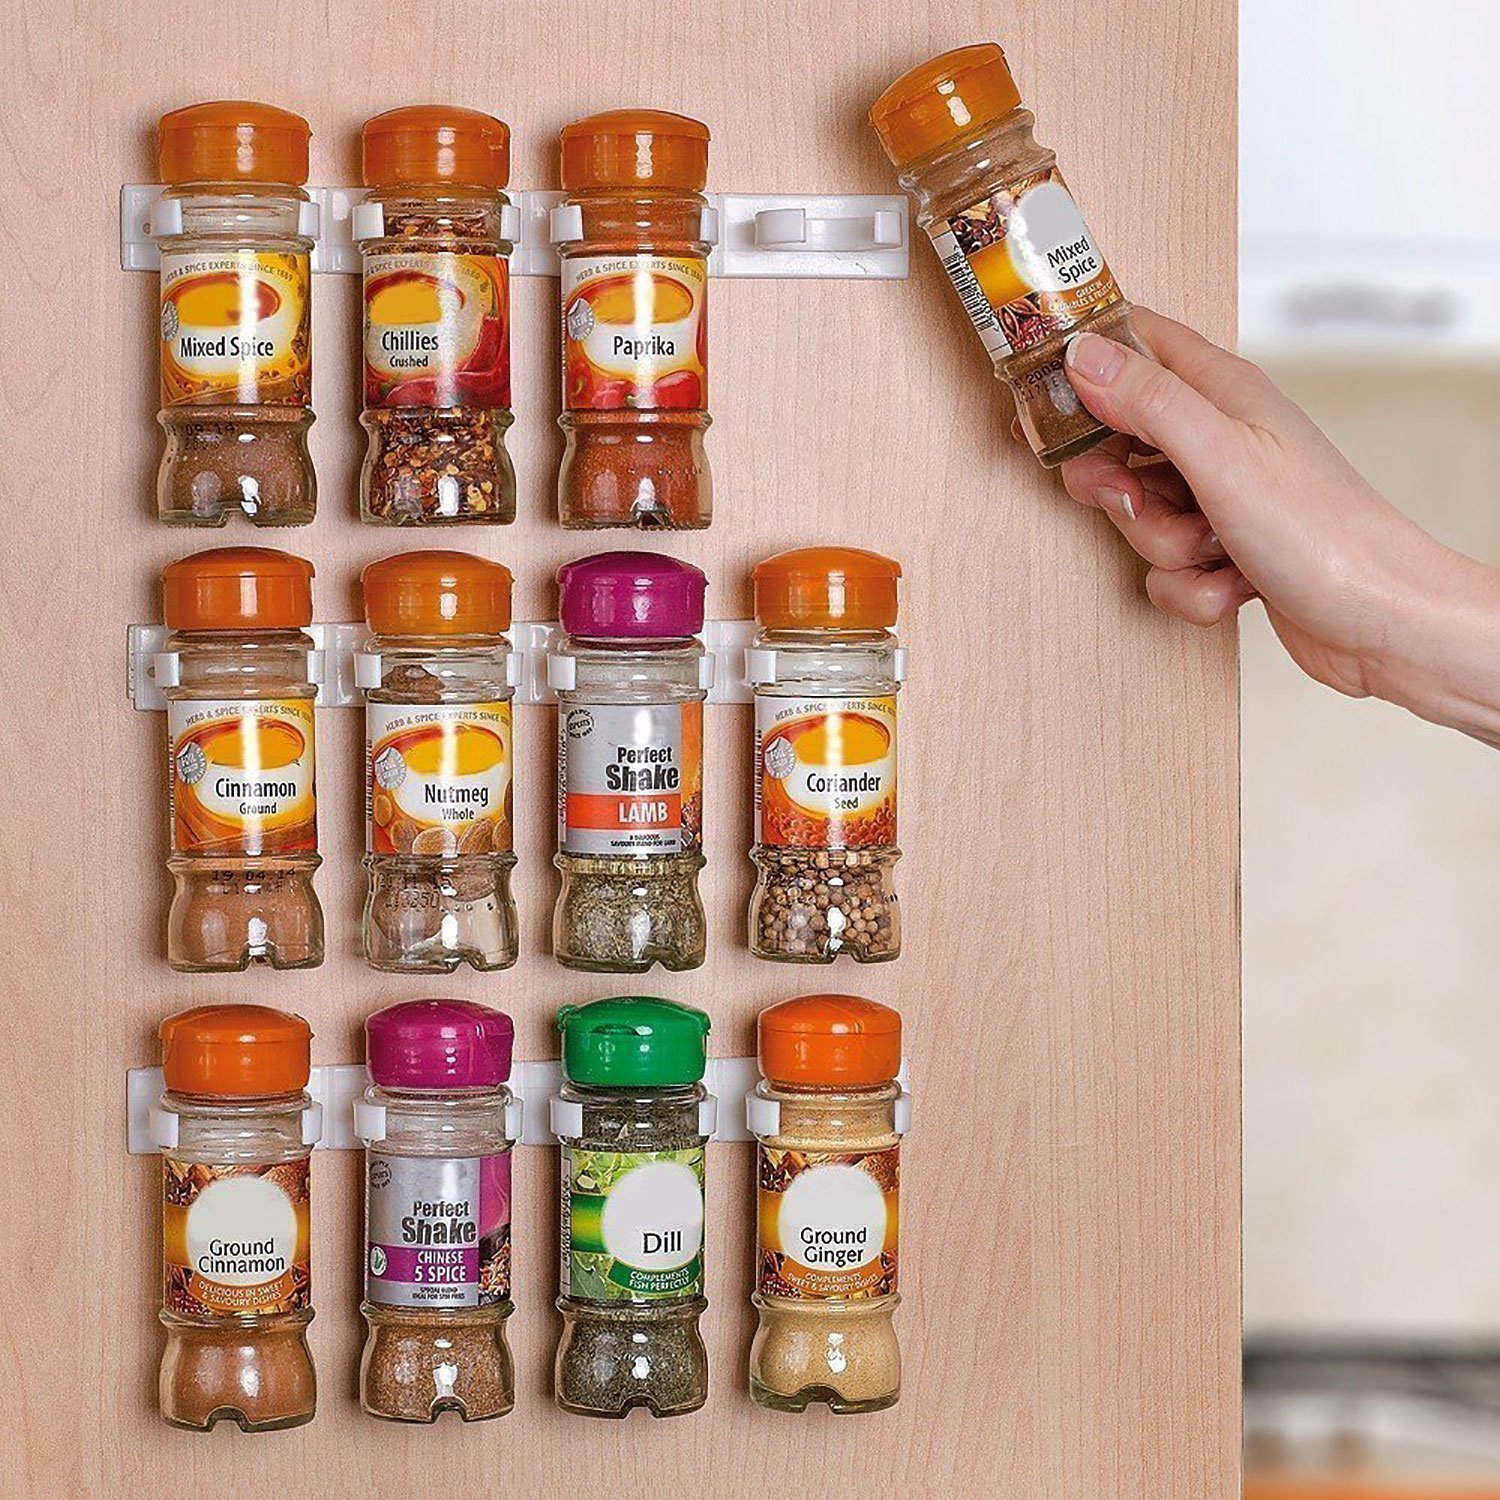 Amazon.com: Home-it Spice Rack, Spice Racks for 20 Cabinet Door ...